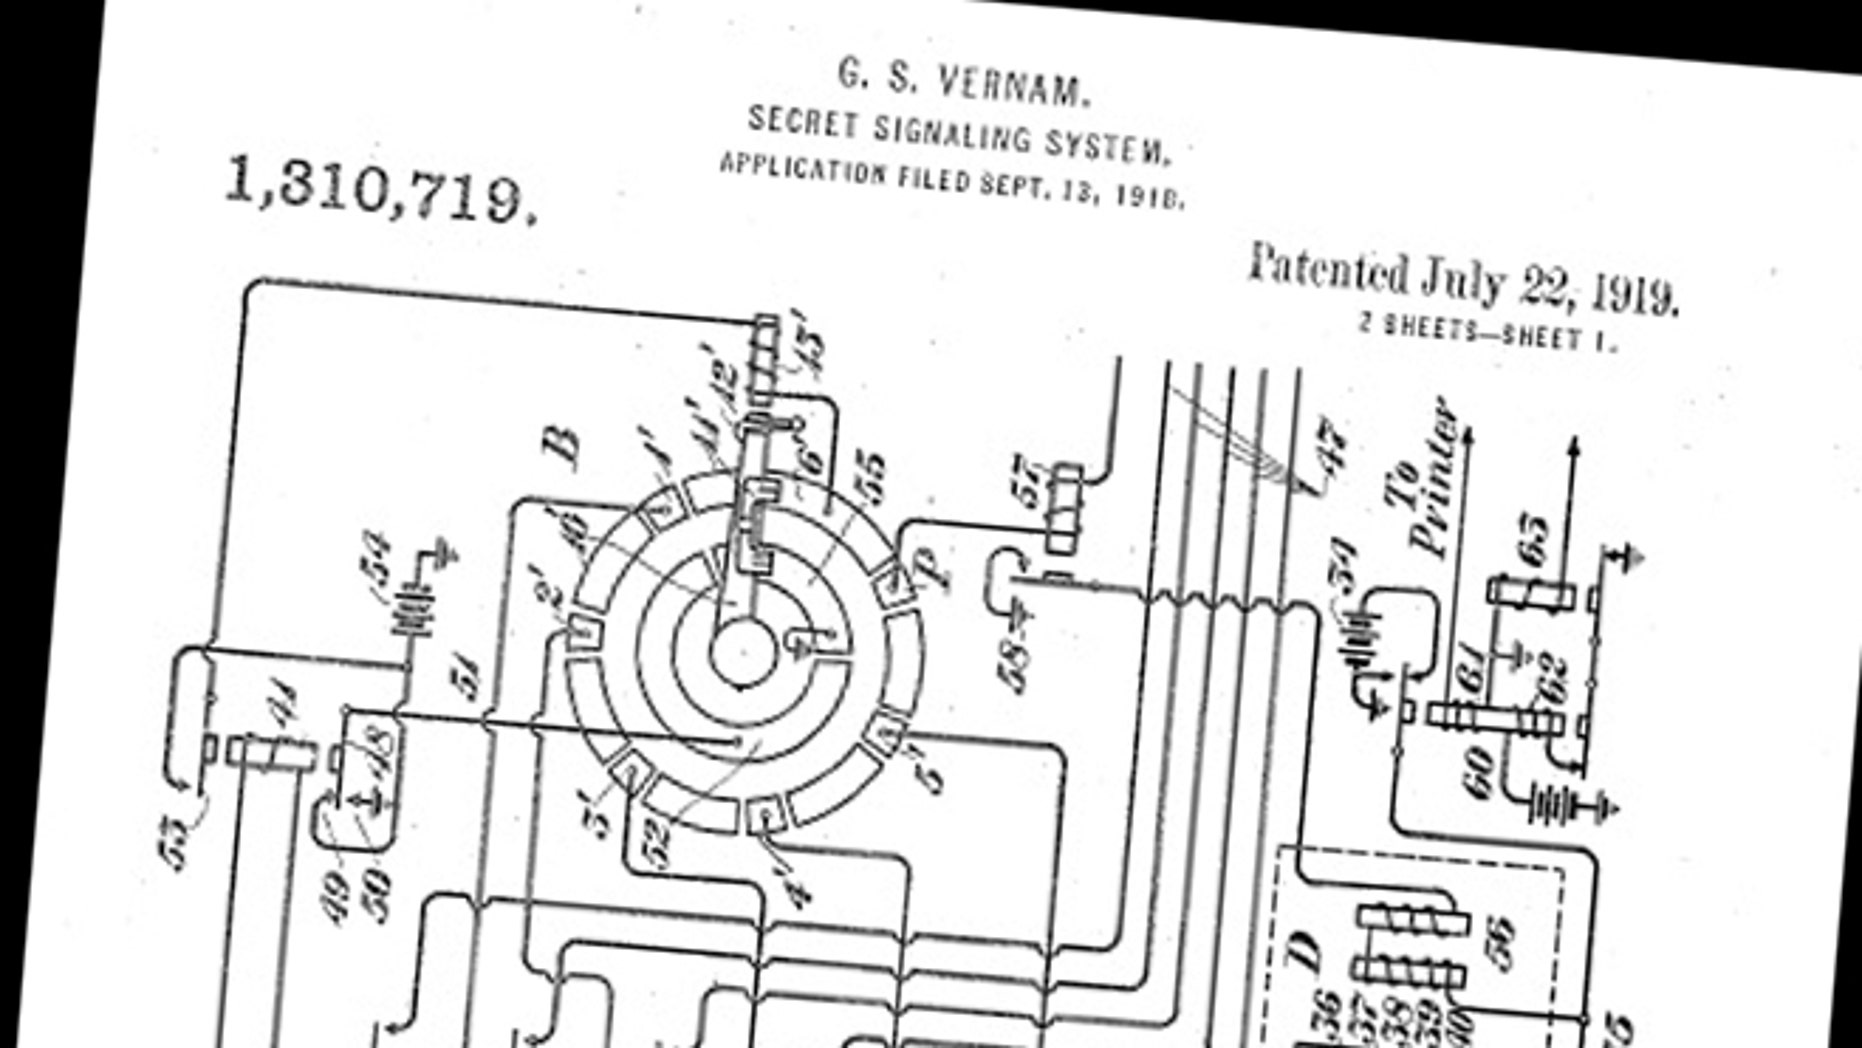 A photo from the patent application for Gilbert Vernam's original teletype encryption machine.